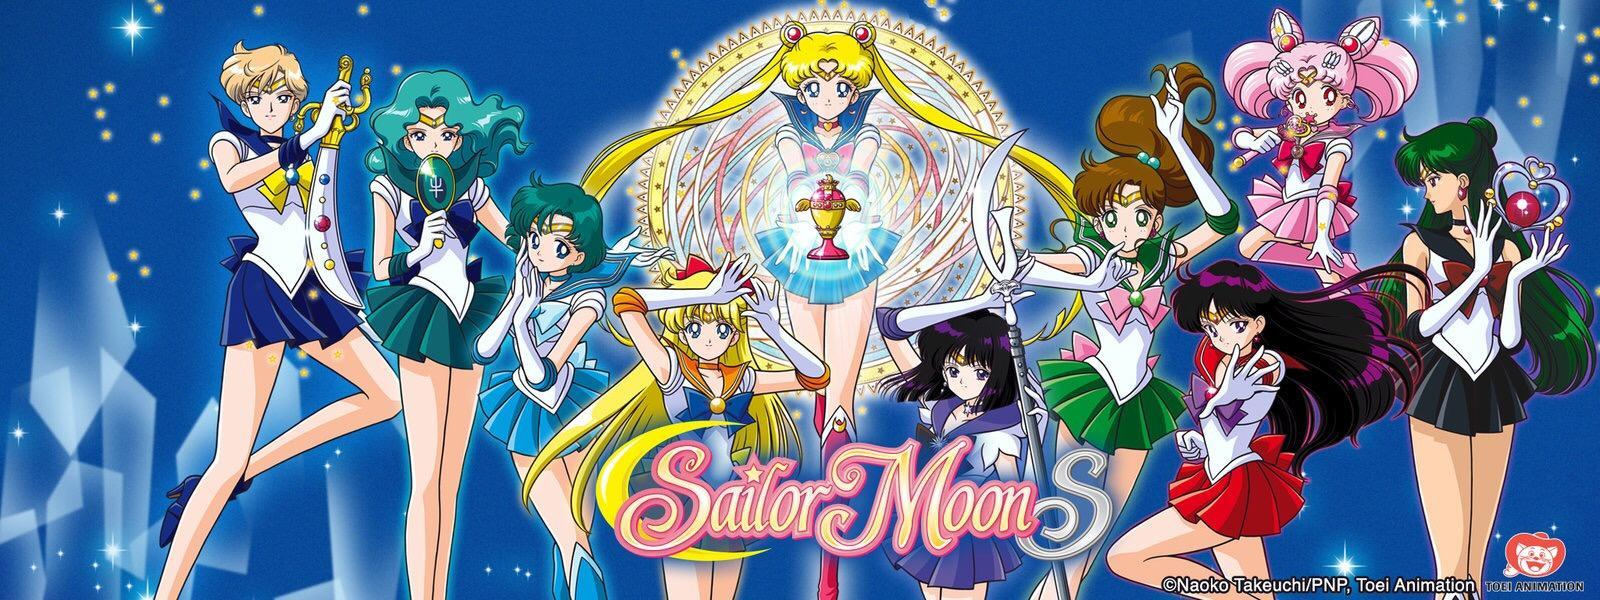 What is your favourite sailor moon warrior?